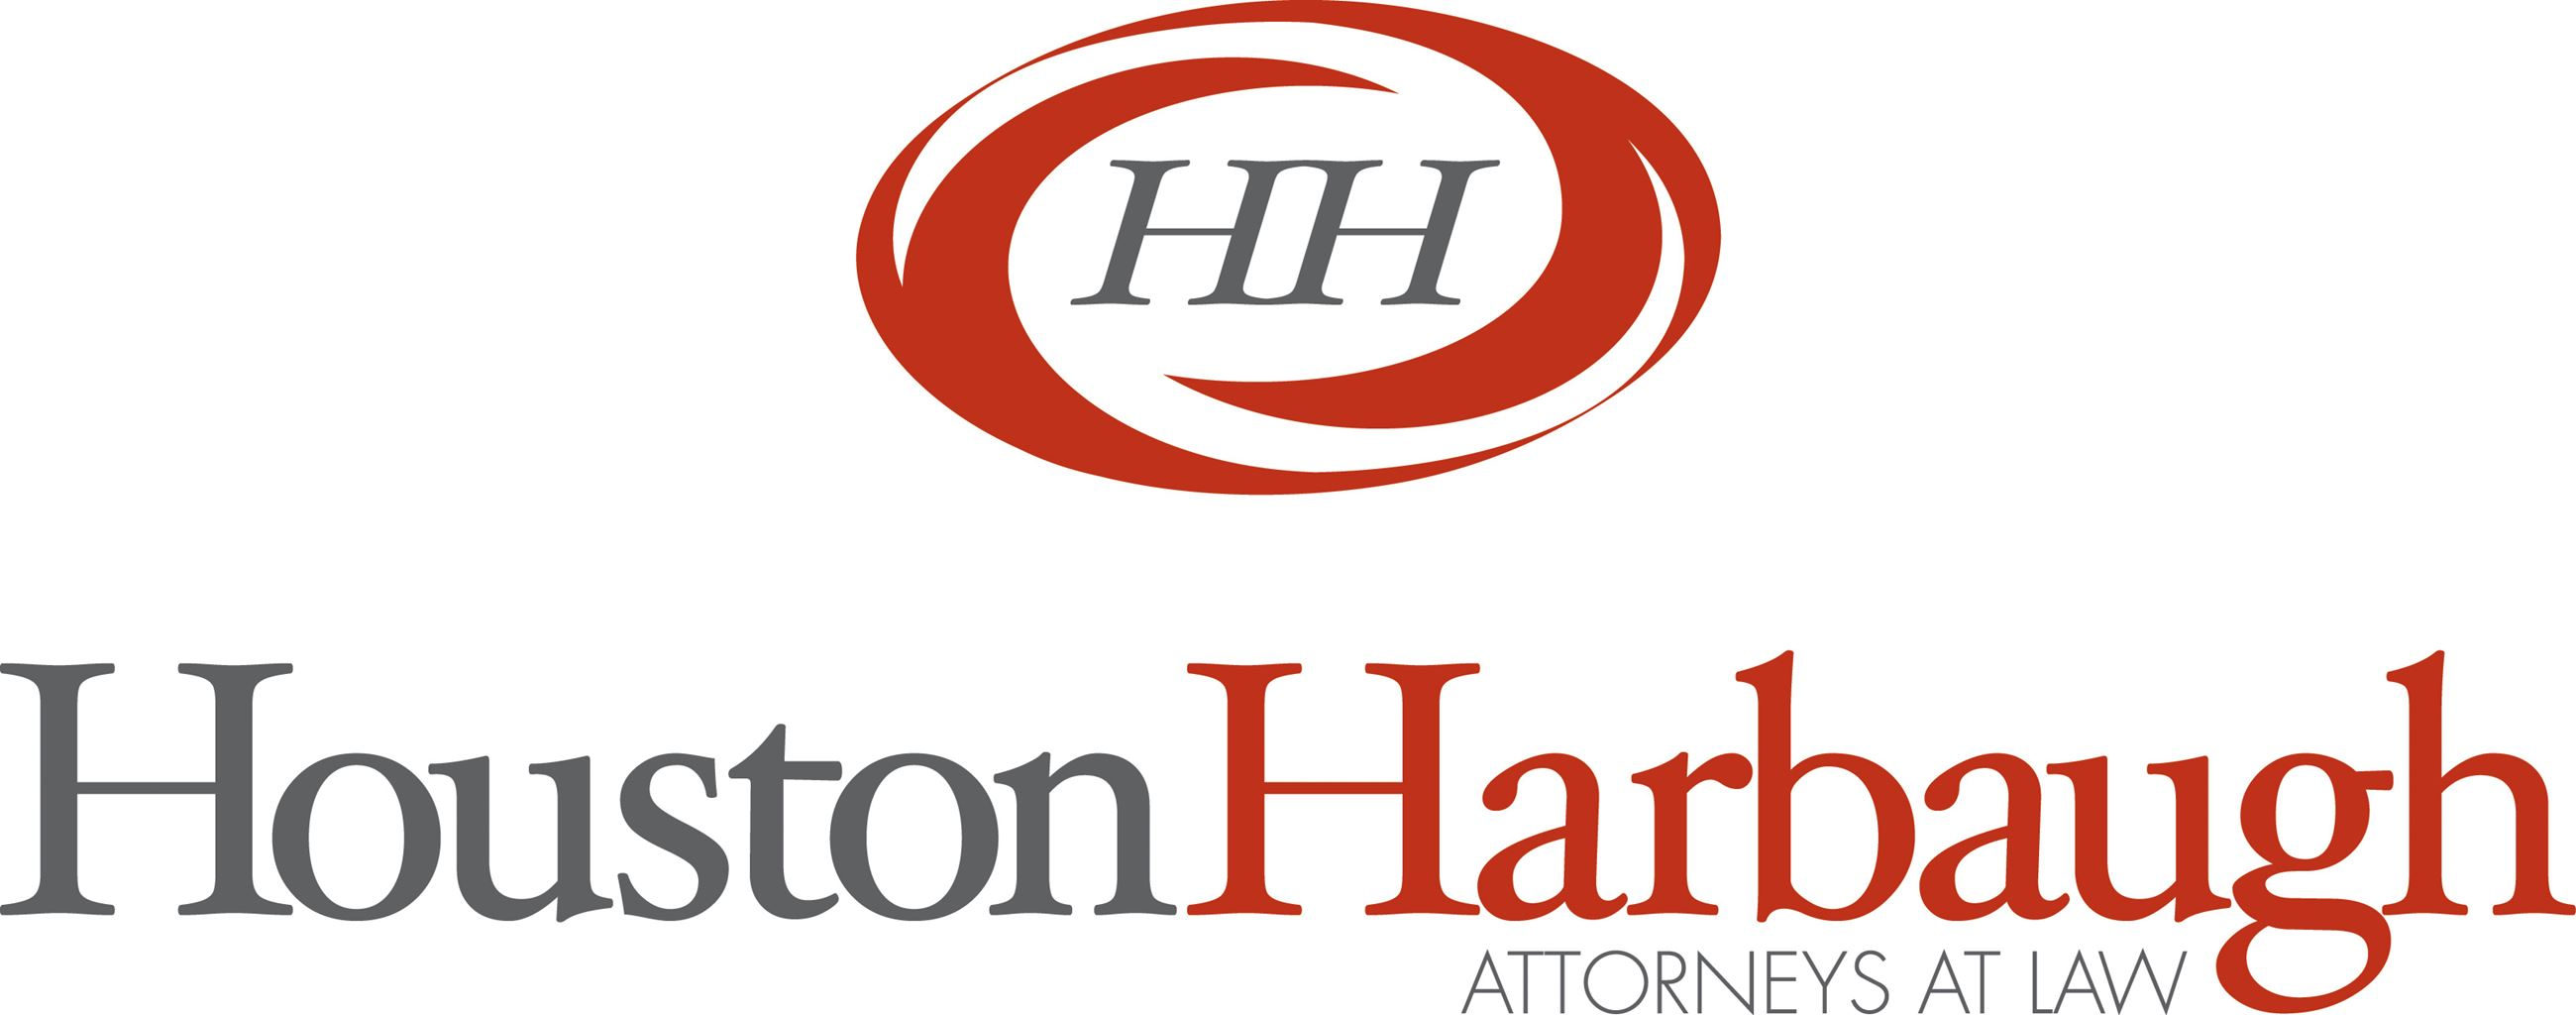 Houston Harbaugh Sponsor logo color